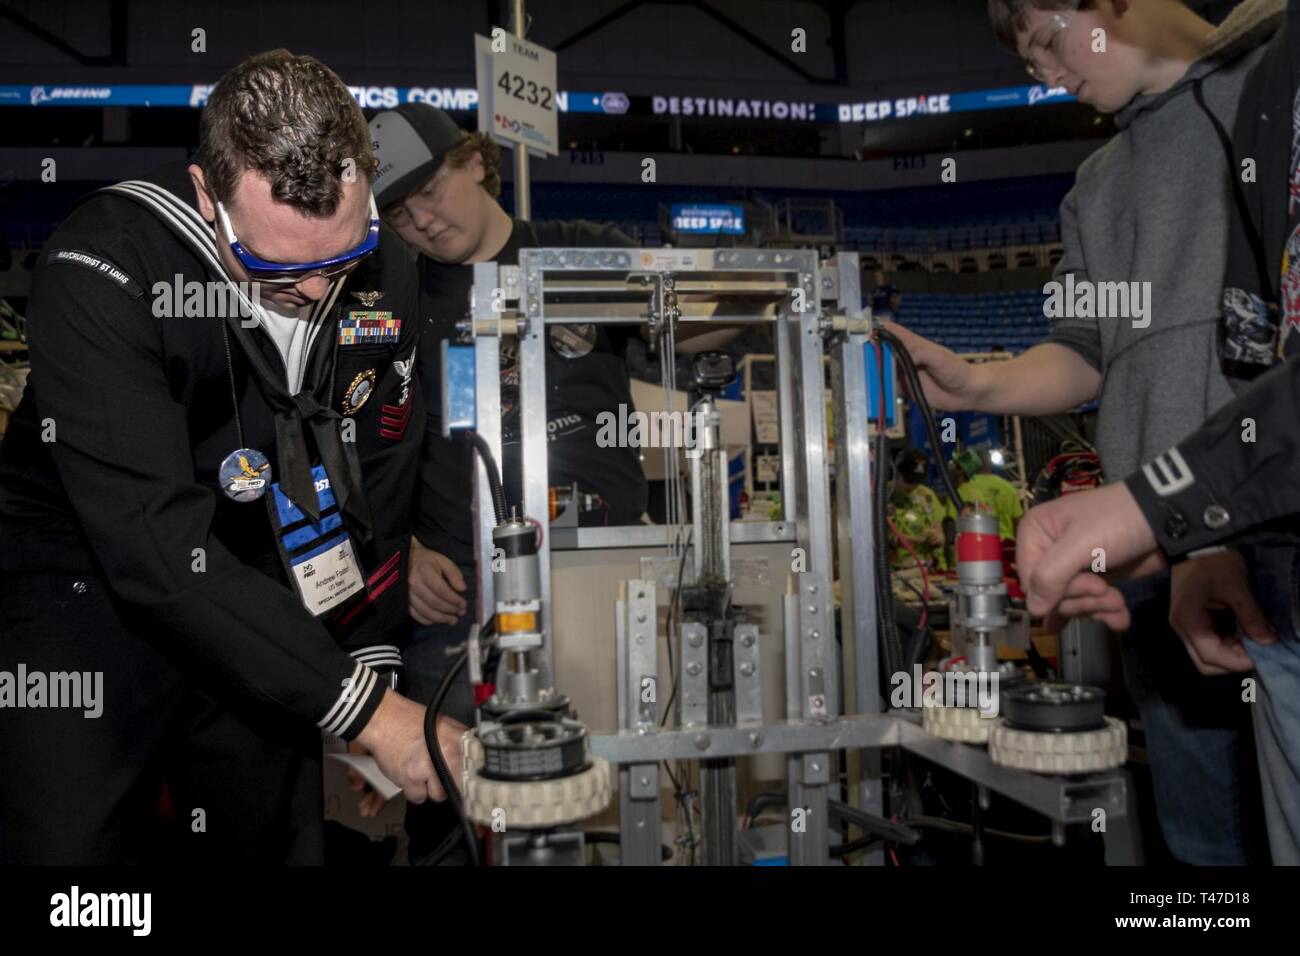 LOUIS (March 15, 2019) Navy Counselor 1st Class Andrew Foster, assigned to Navy Recruiting District (NRD) St. Louis, places a U.S. Navy sticker on an Alton High School, Ill., robot during the For Inspiration and Recognition of Science and Technology (FIRST) Robotics St. Louis regional competition, March 15, 2019. FIRST Robotics is an international high school robotics competition held each year in which teams of high school students, coaches, and mentors build game-playing robots which complete tasks such as scoring balls into goals, flying discs into goals, inner tubes onto racks, hanging on  Stock Photo